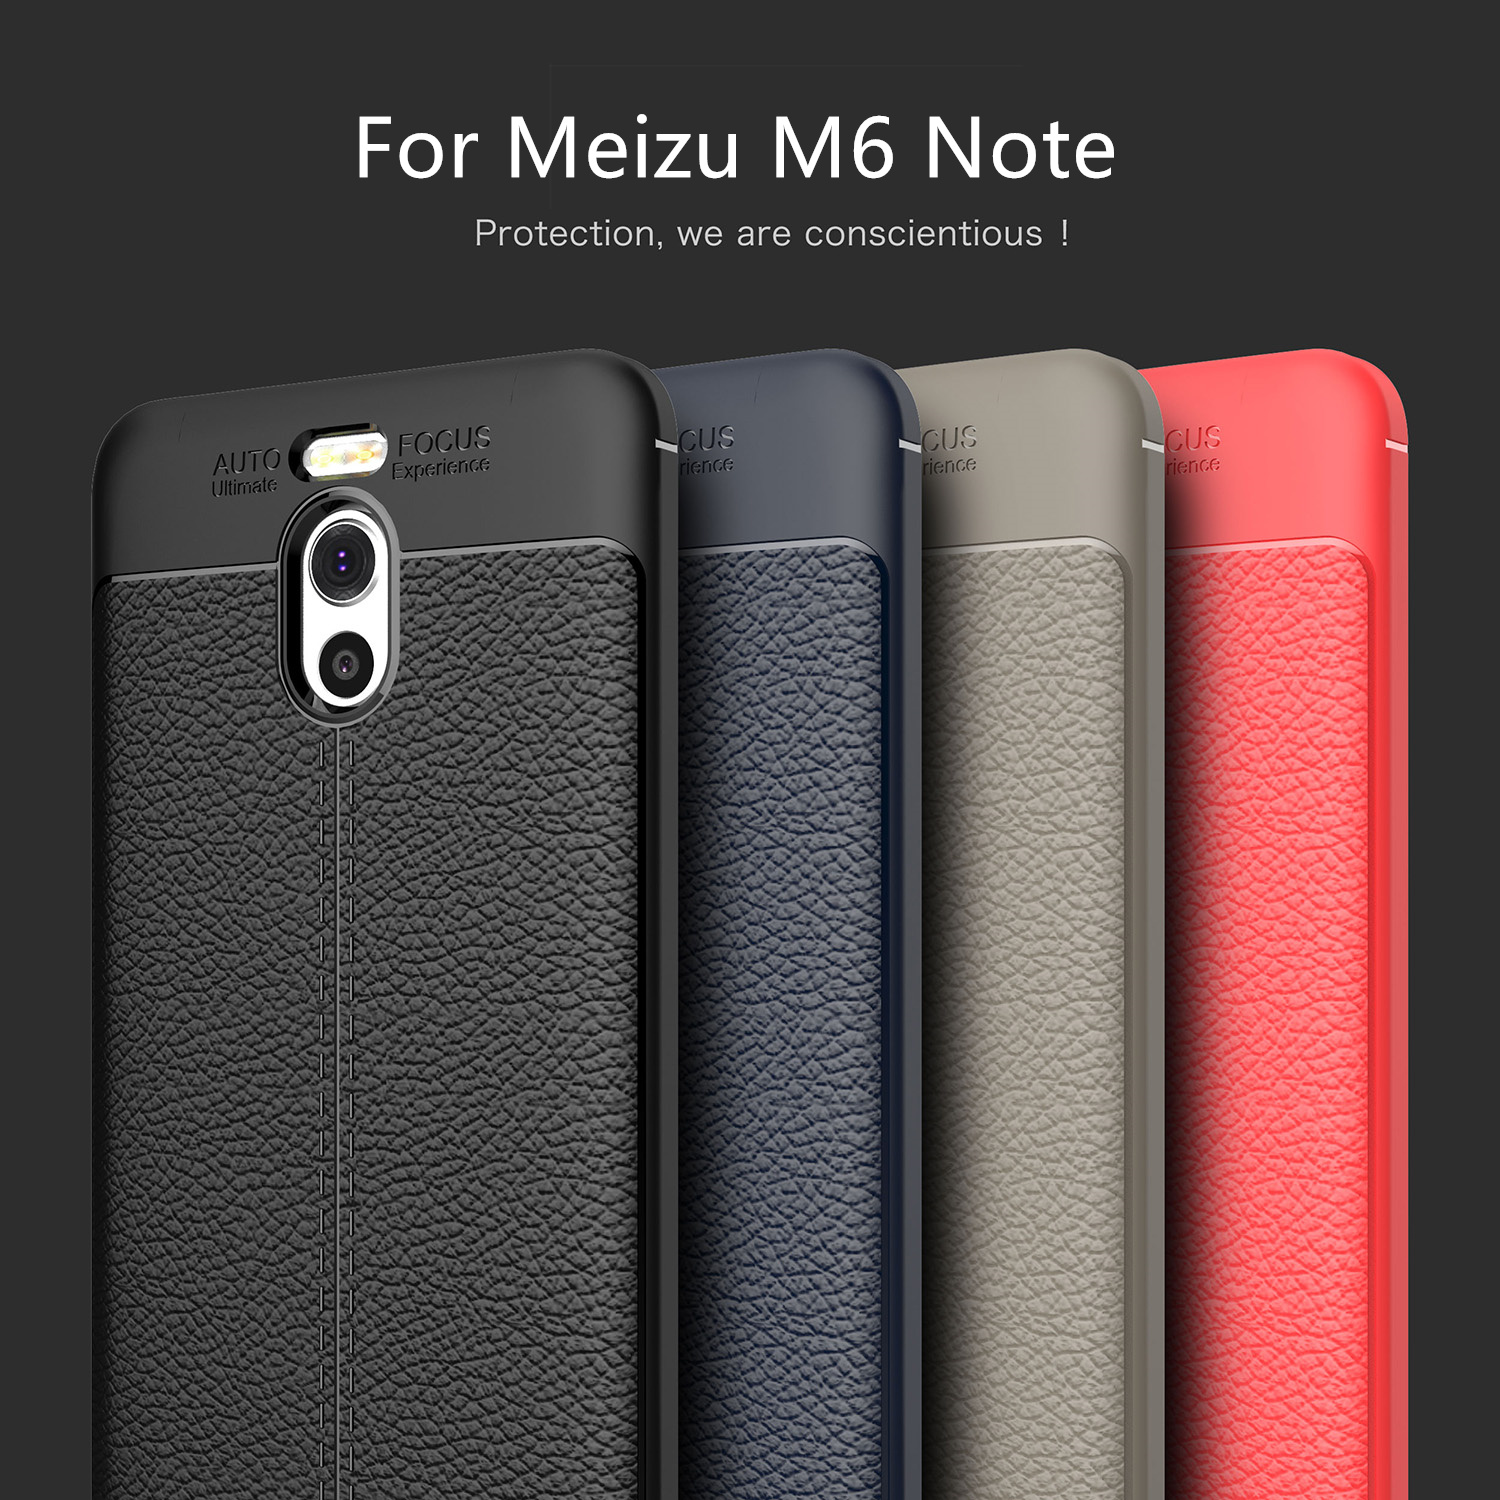 Meizu M6 Note Case Meizu M 6 Note Cover Soft Silicone Leather Style Shockproof Armor Phone Case For Meizu M6 Note Fundas 5 5 quot in Fitted Cases from Cellphones amp Telecommunications